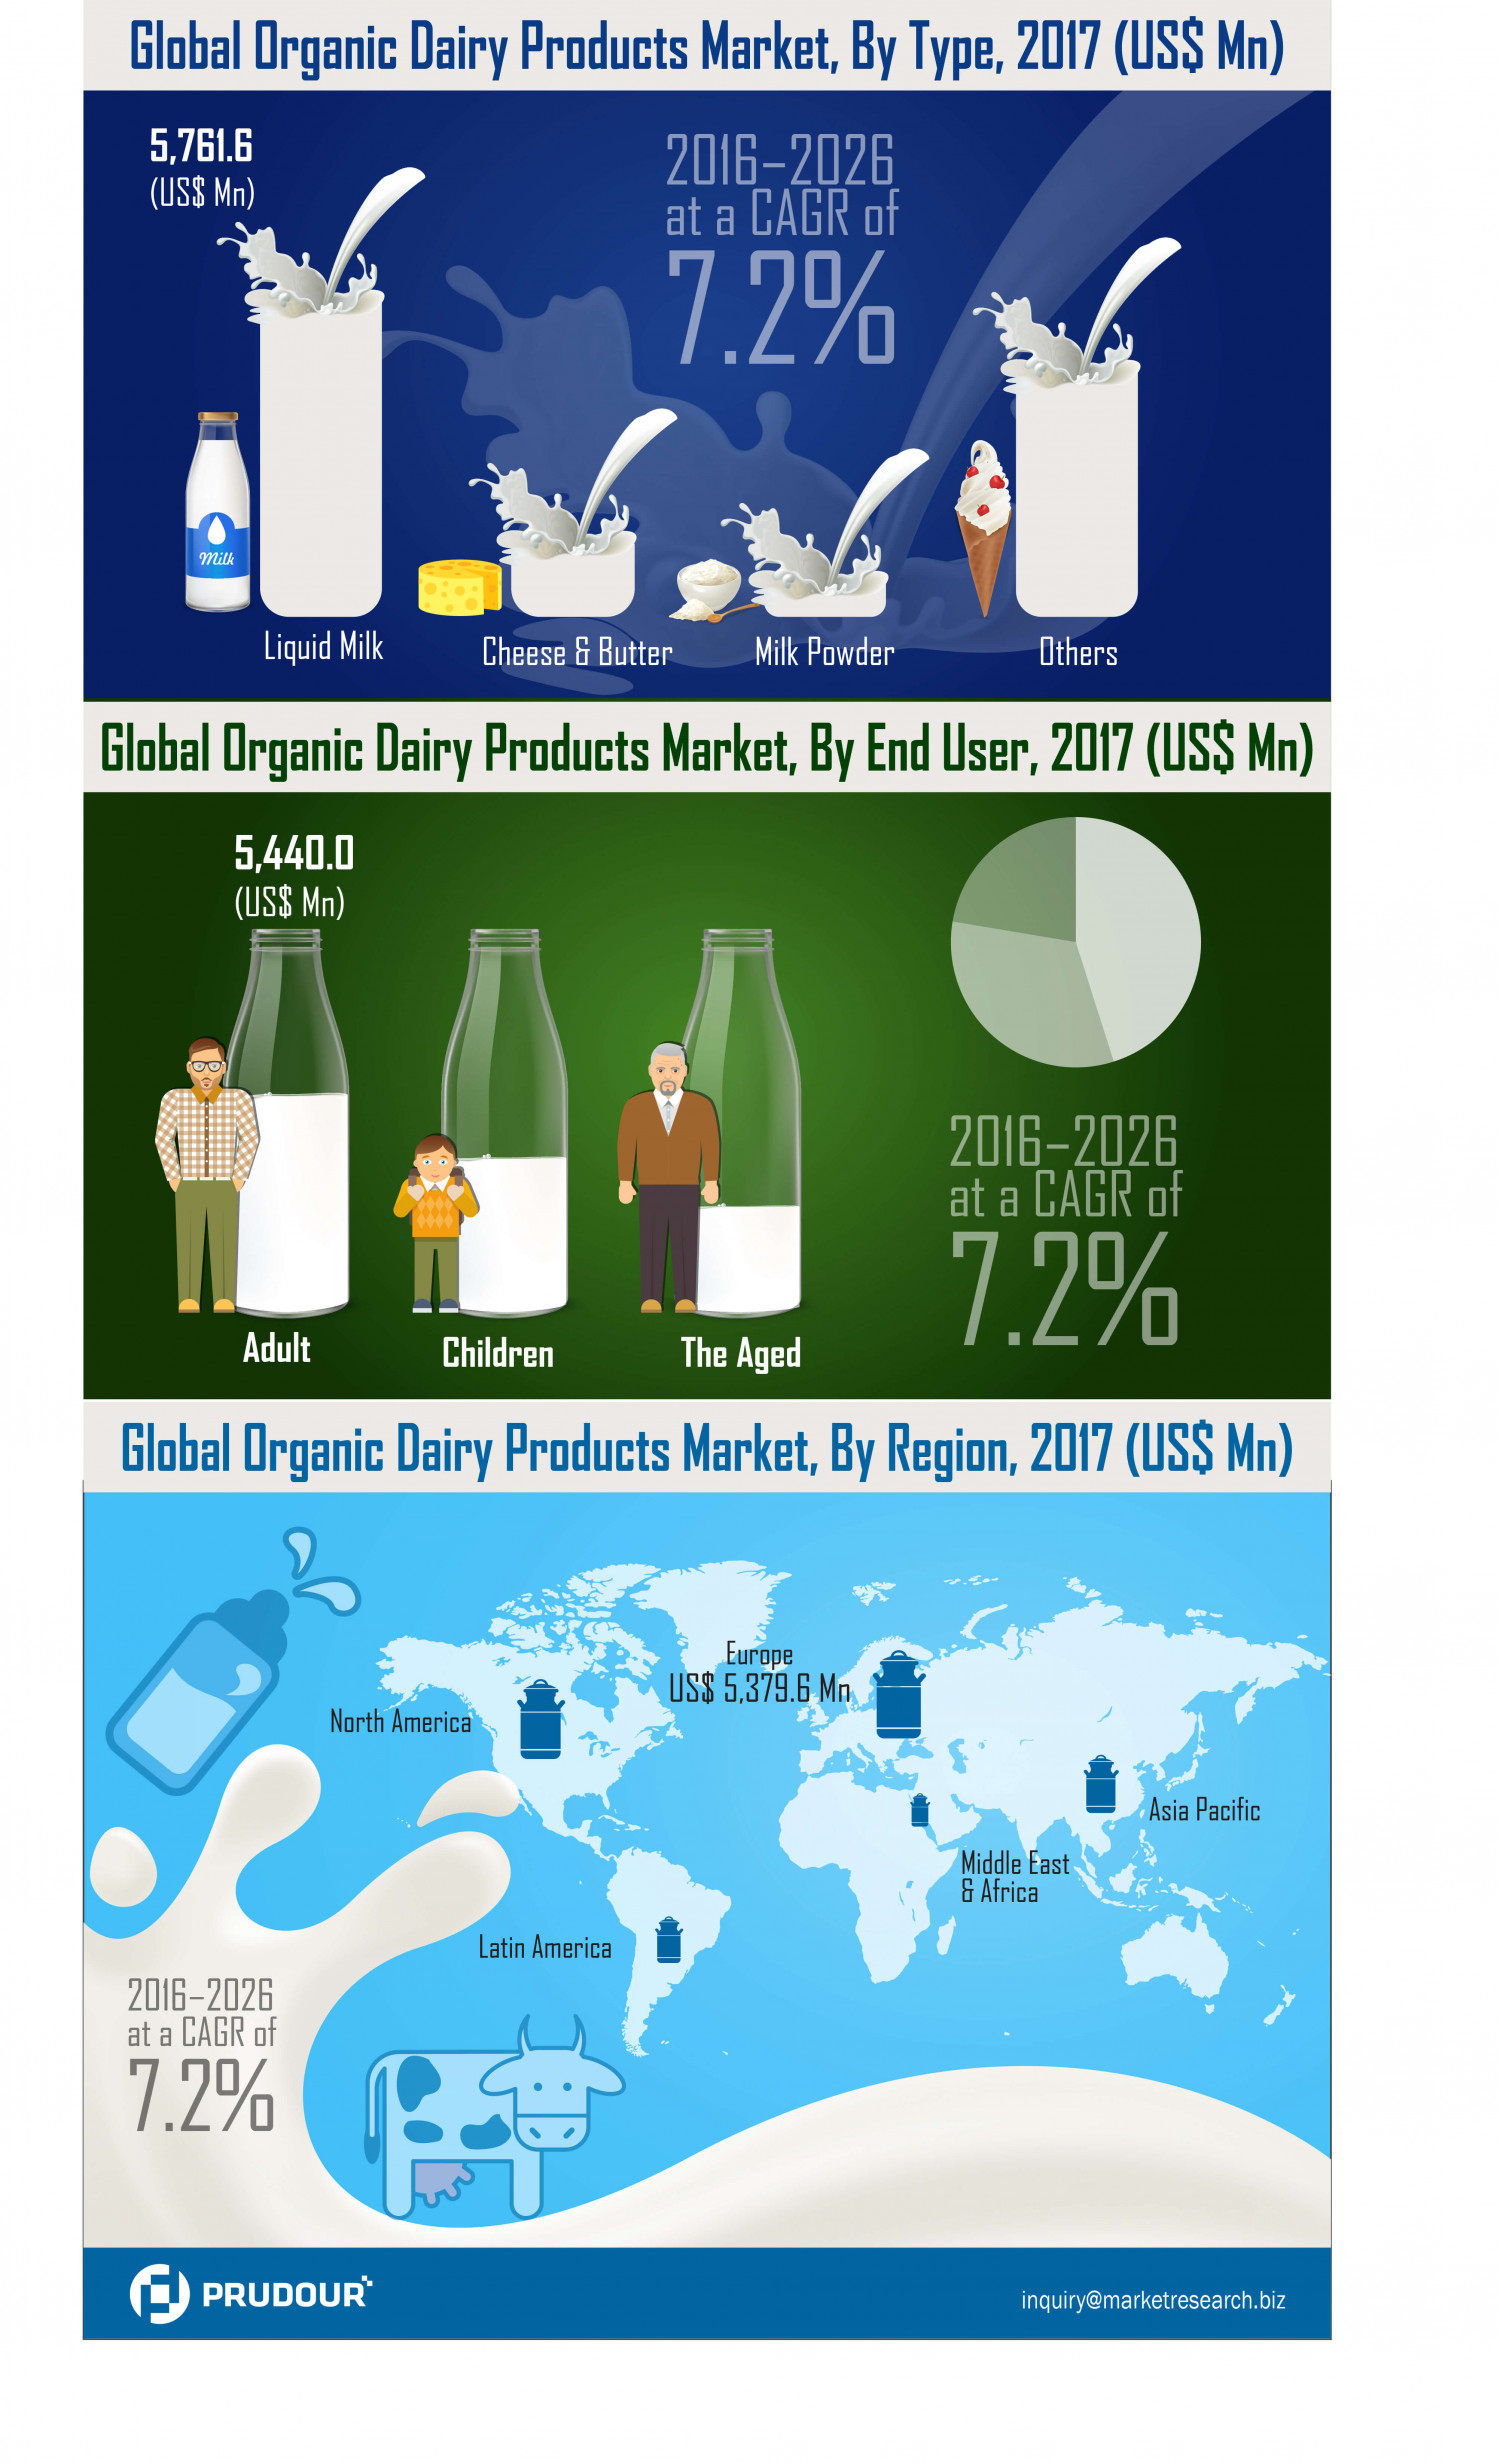 Organic Dairy Products Market Witnessed CAGR of Over 7.2% During 2017-2026 Infographic